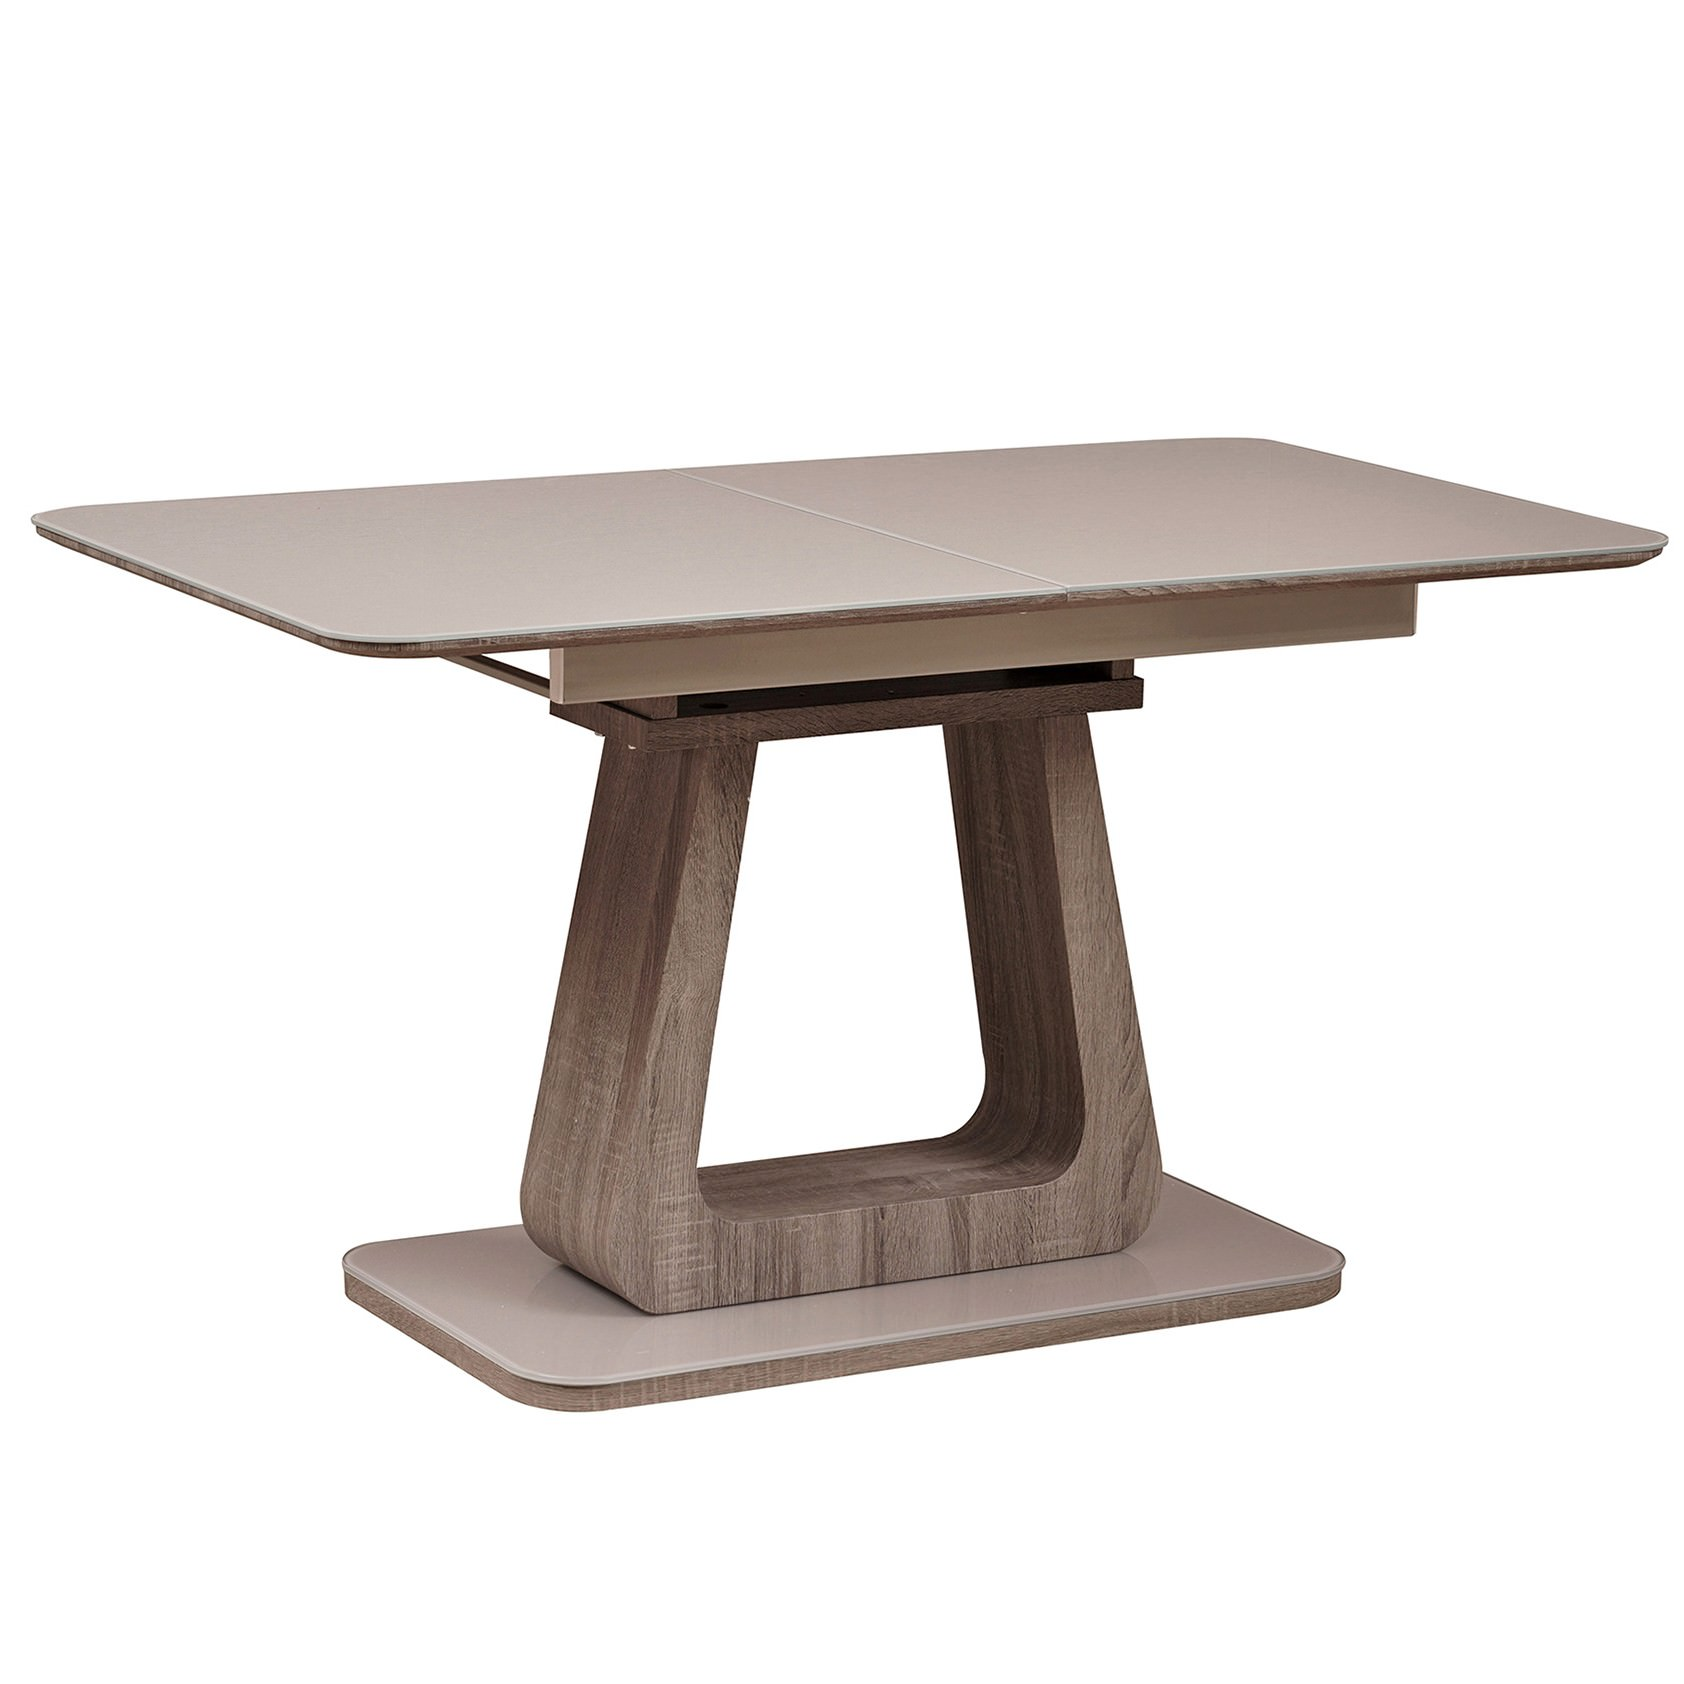 Kaja Tempered Glass Topped Extension Dining Table, 140-180cm, Cappuccino / Oak